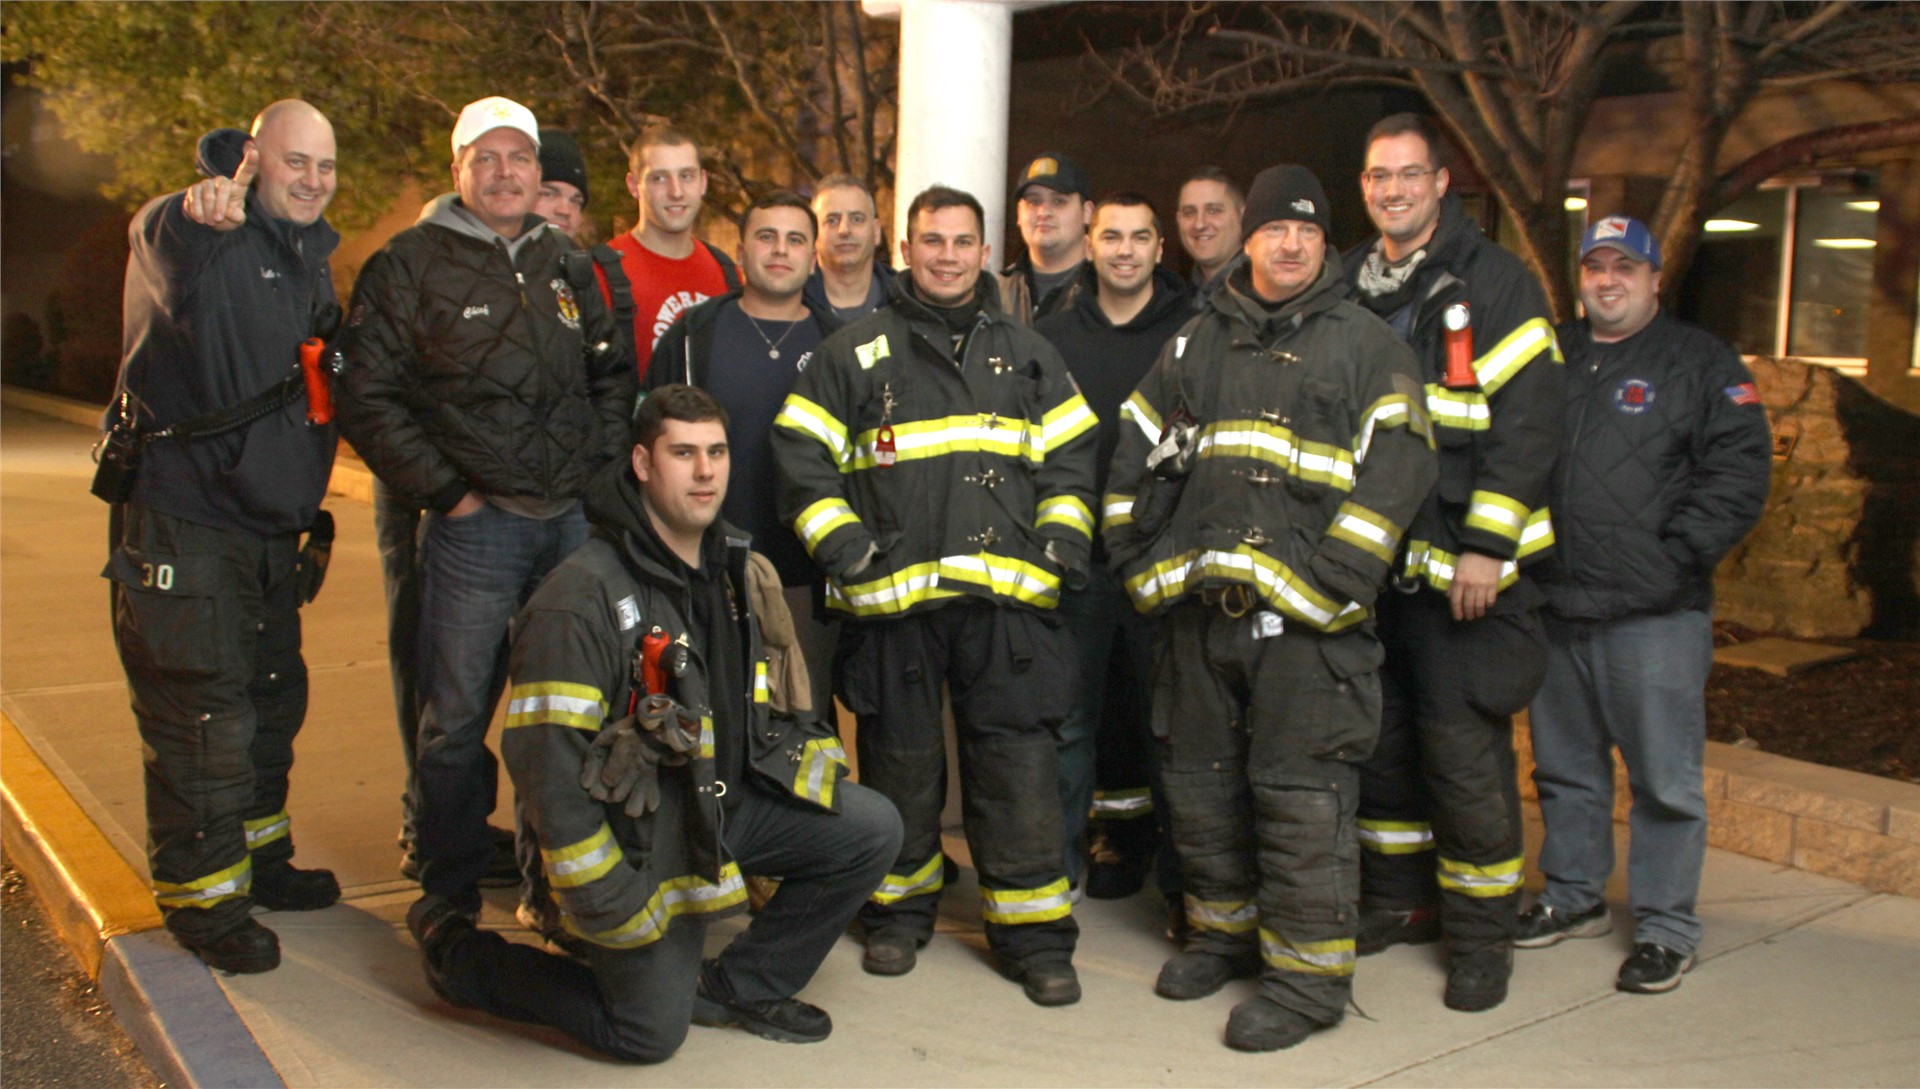 Thanks to our Commack Volunteer Firefighters for the escort!